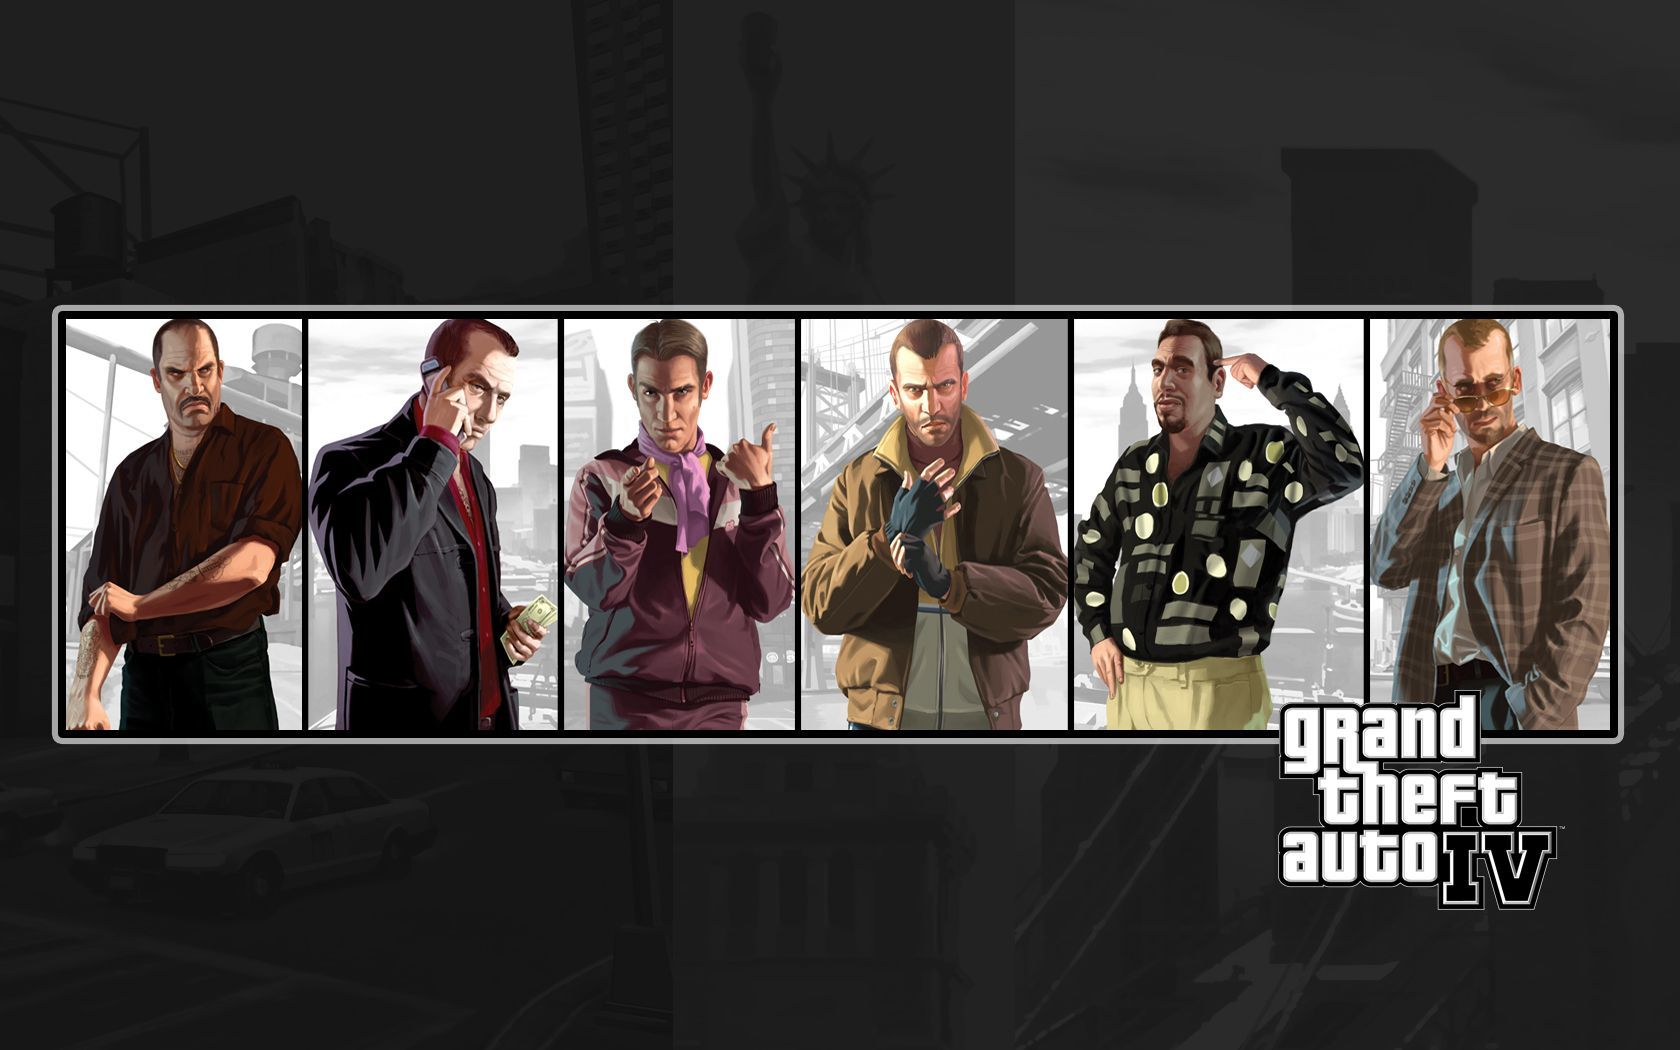 Gta 6 Wallpaper Hd 1080p Free Download Hd Desktop Wallpapers 1080p Grand Theft Auto Grand Theft Auto 4 Gta